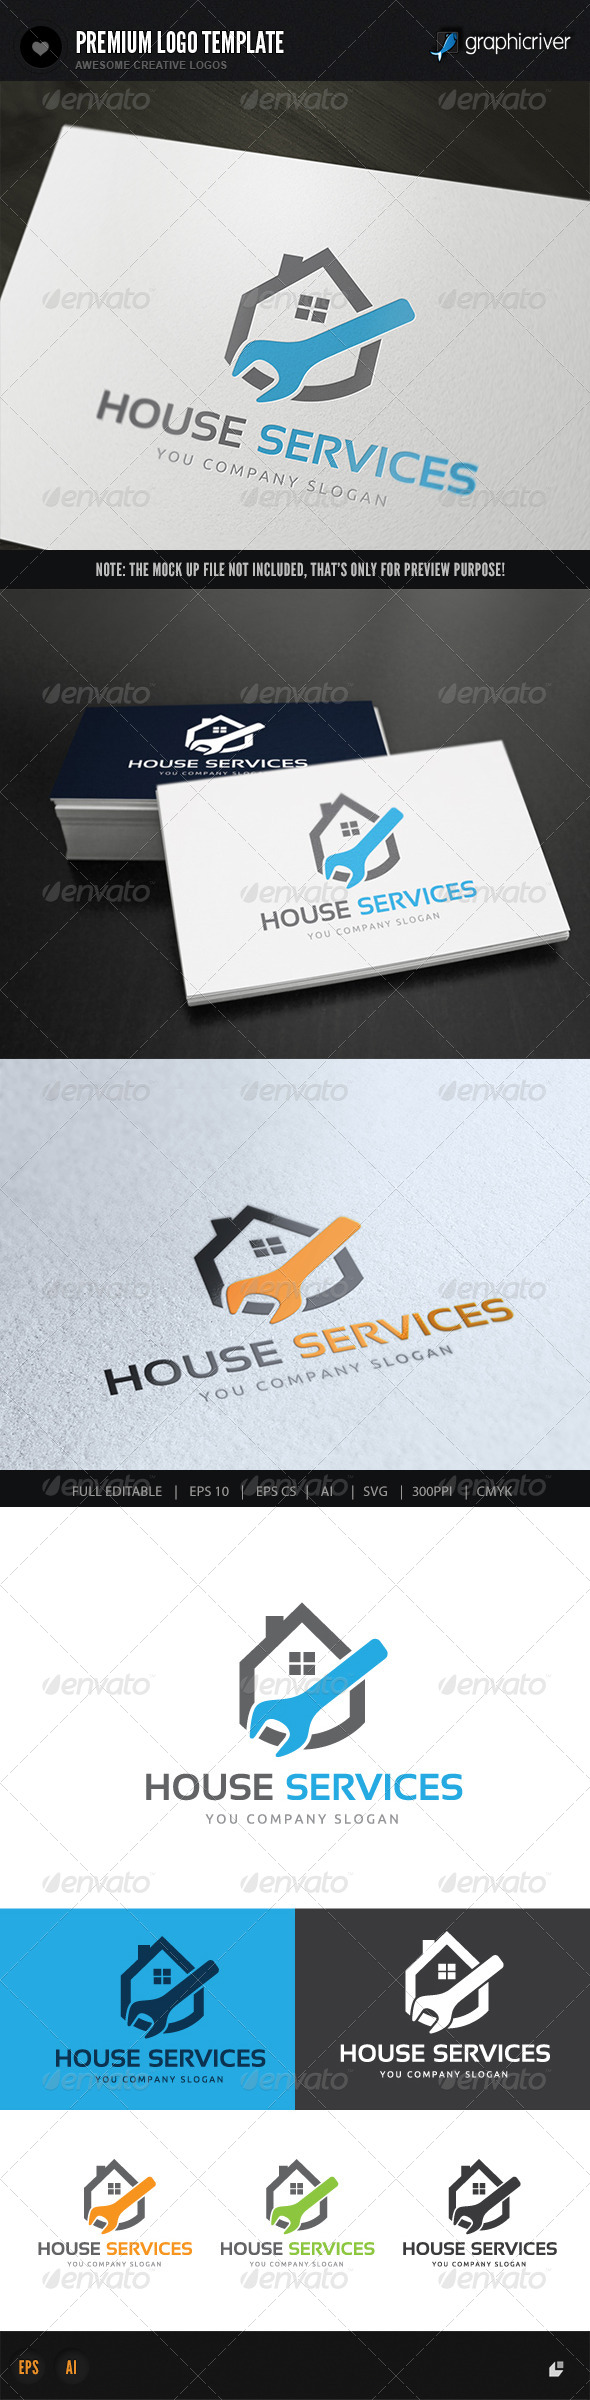 GraphicRiver House Services 8436239